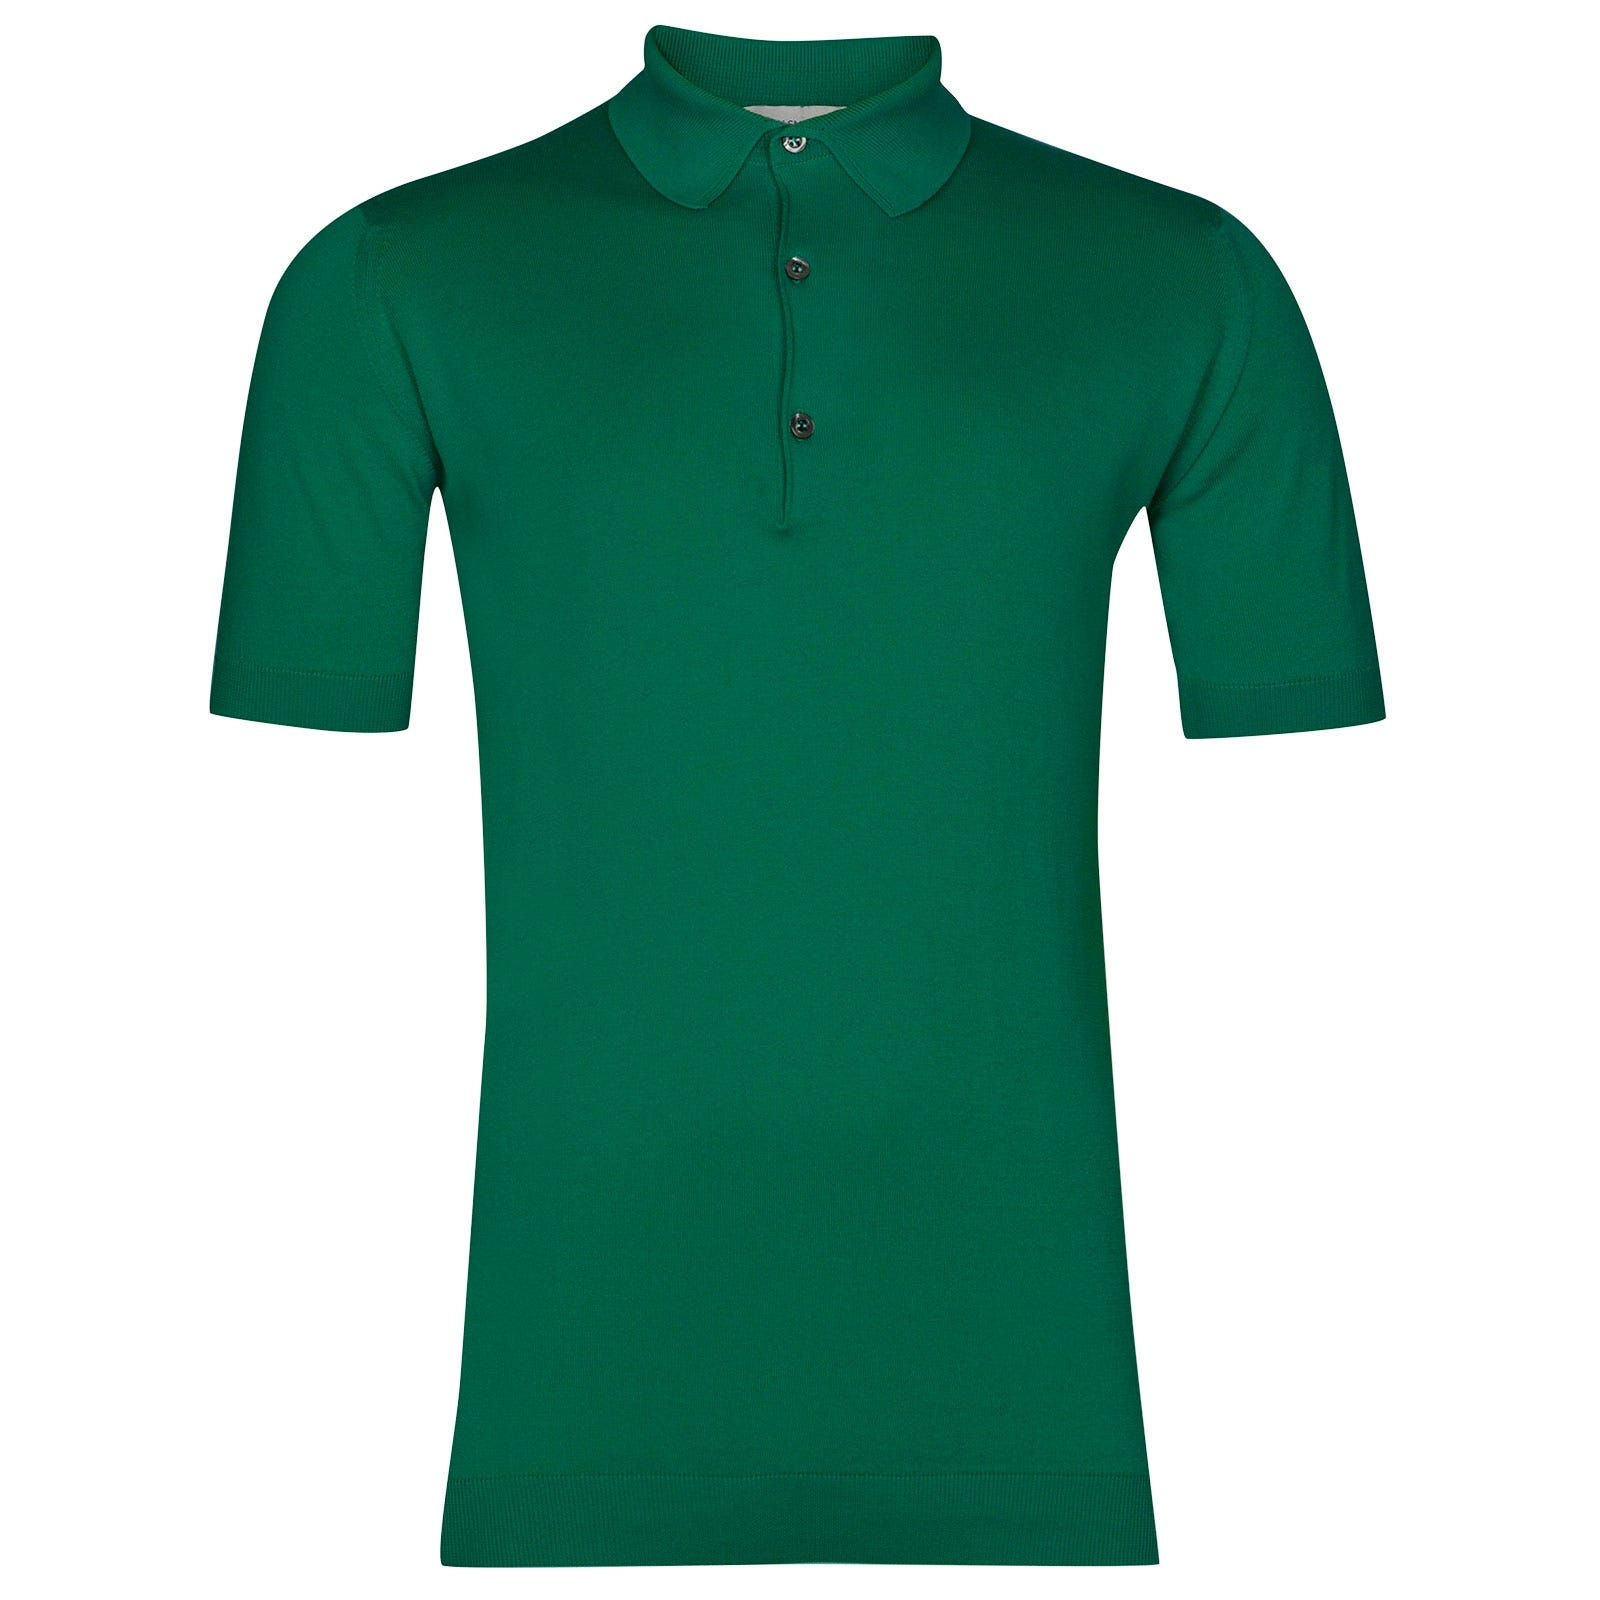 John Smedley Adrian Sea Island Cotton Shirt in Boron Green-M